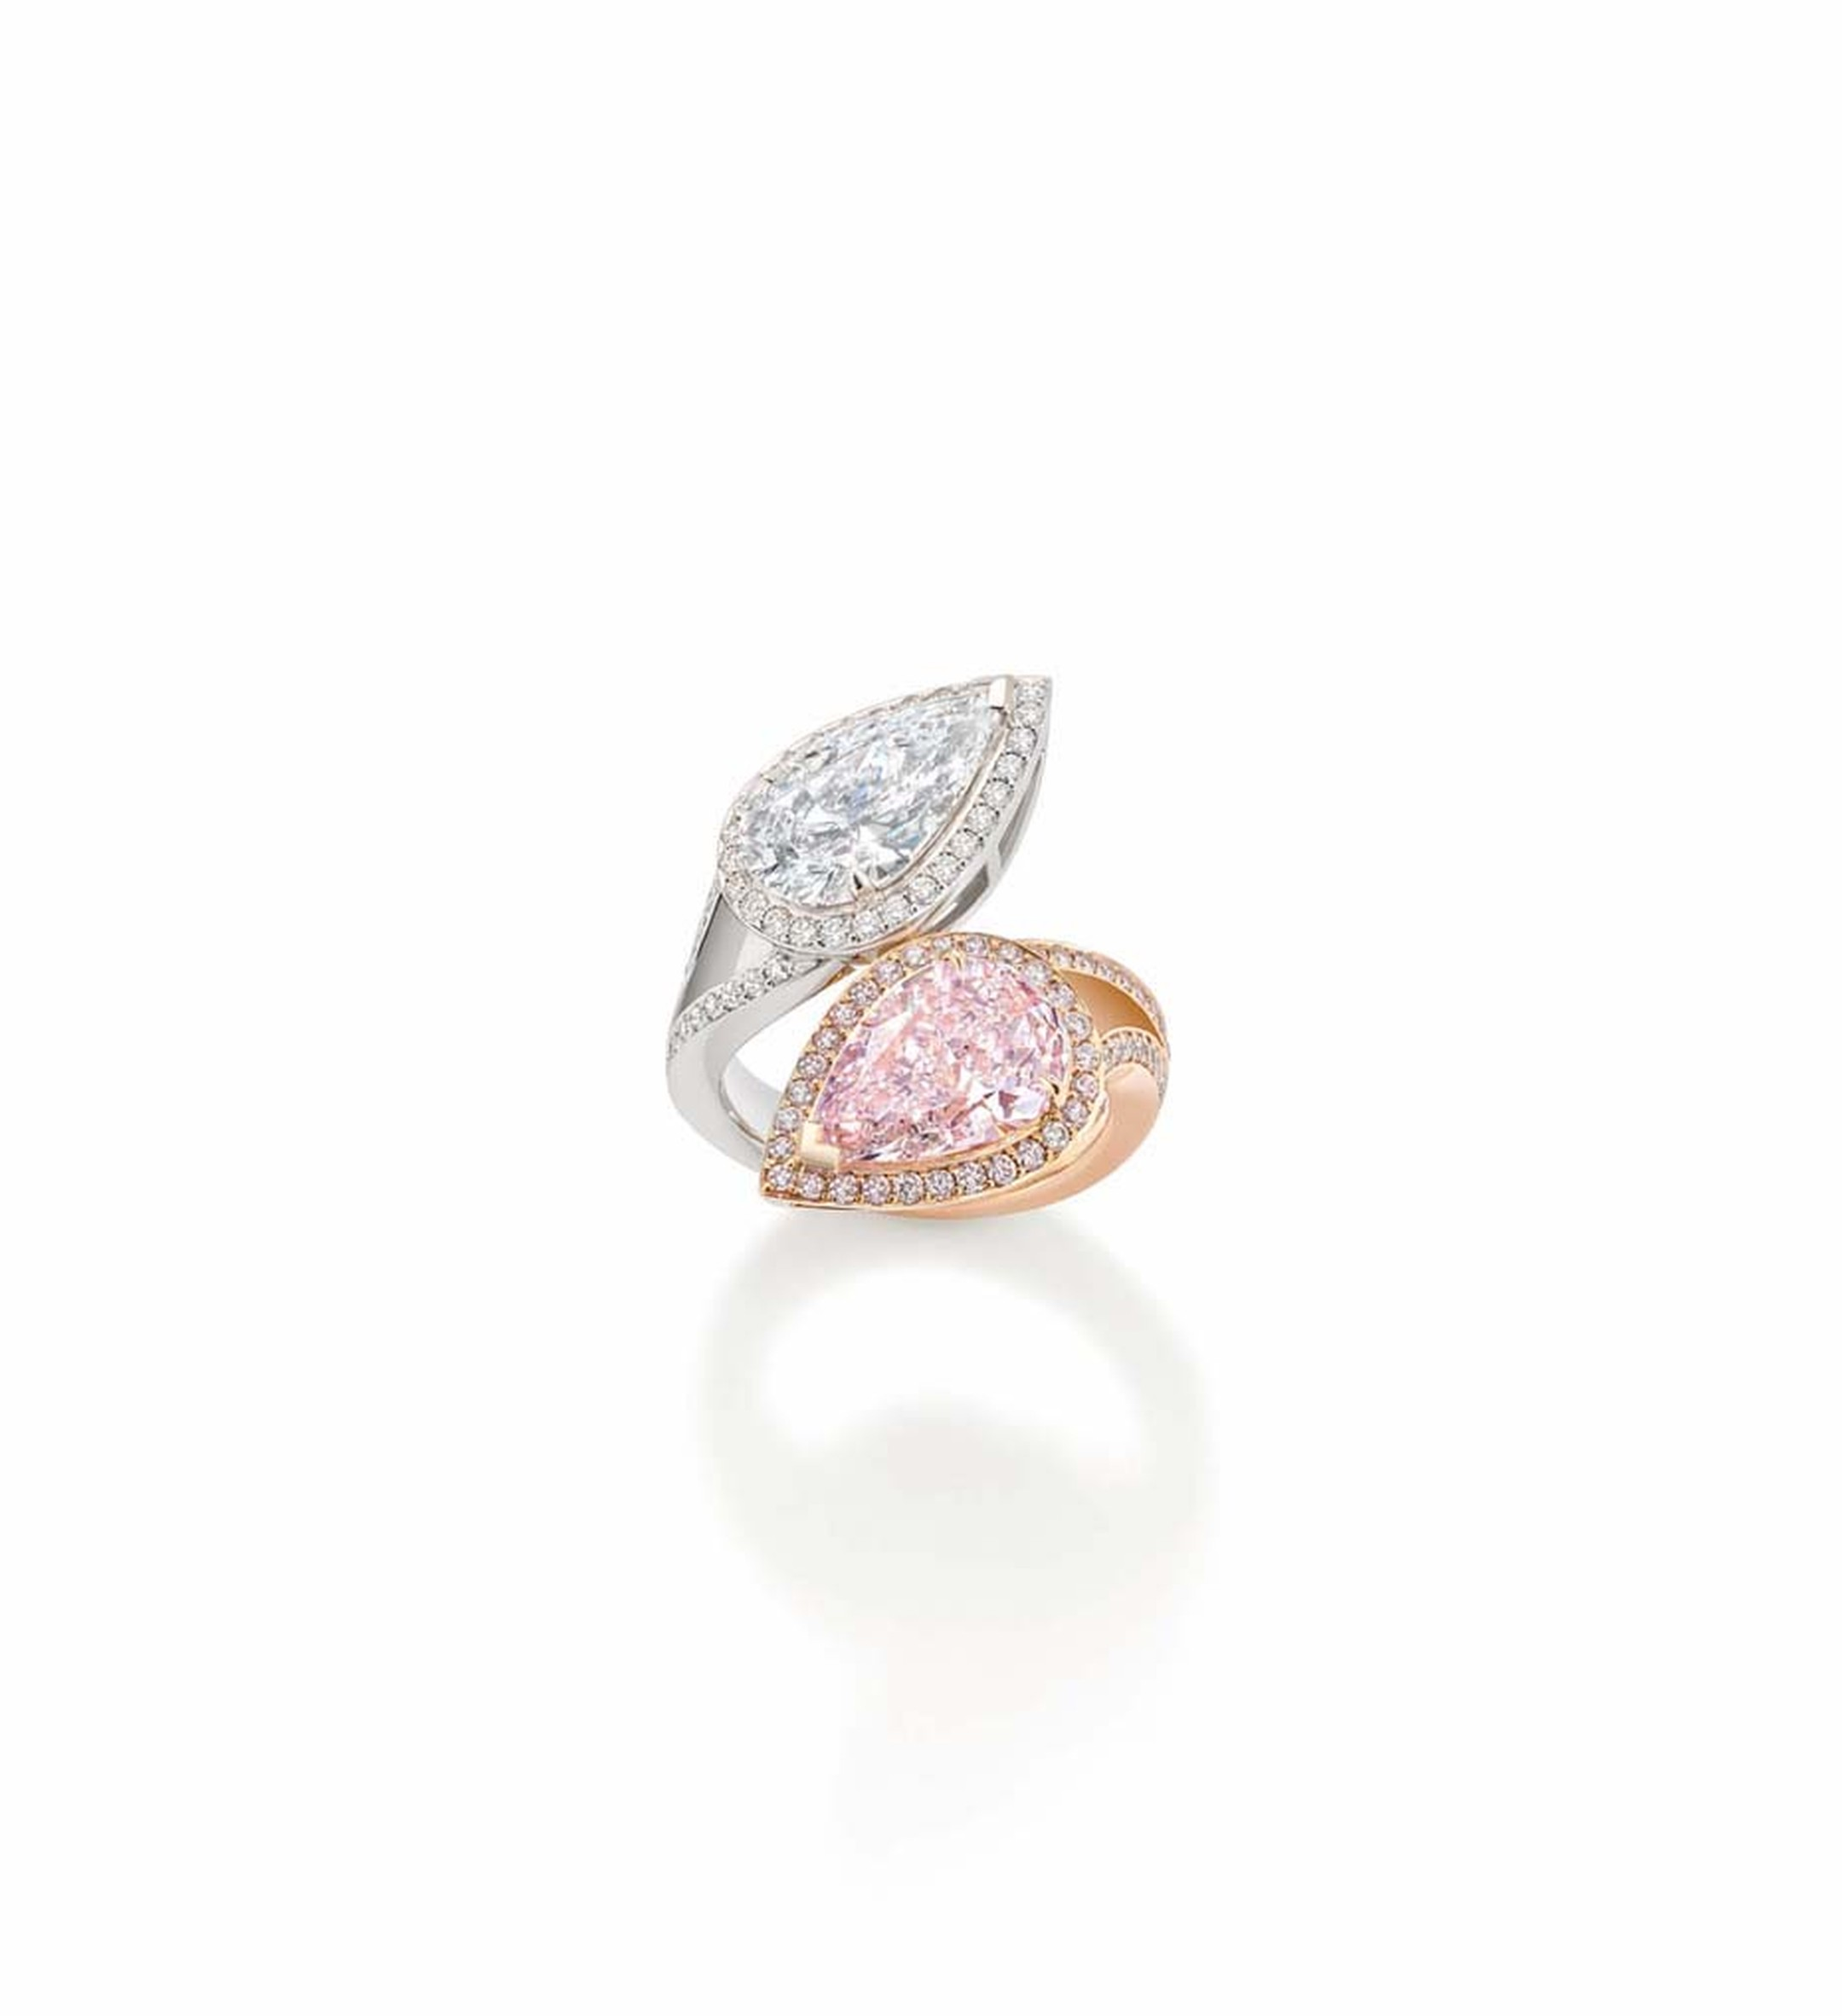 Boodles Gemini collection ring features a natural light pink, pear-shaped diamond on one prong, mirrored by a stunning D colour white diamond on the other.